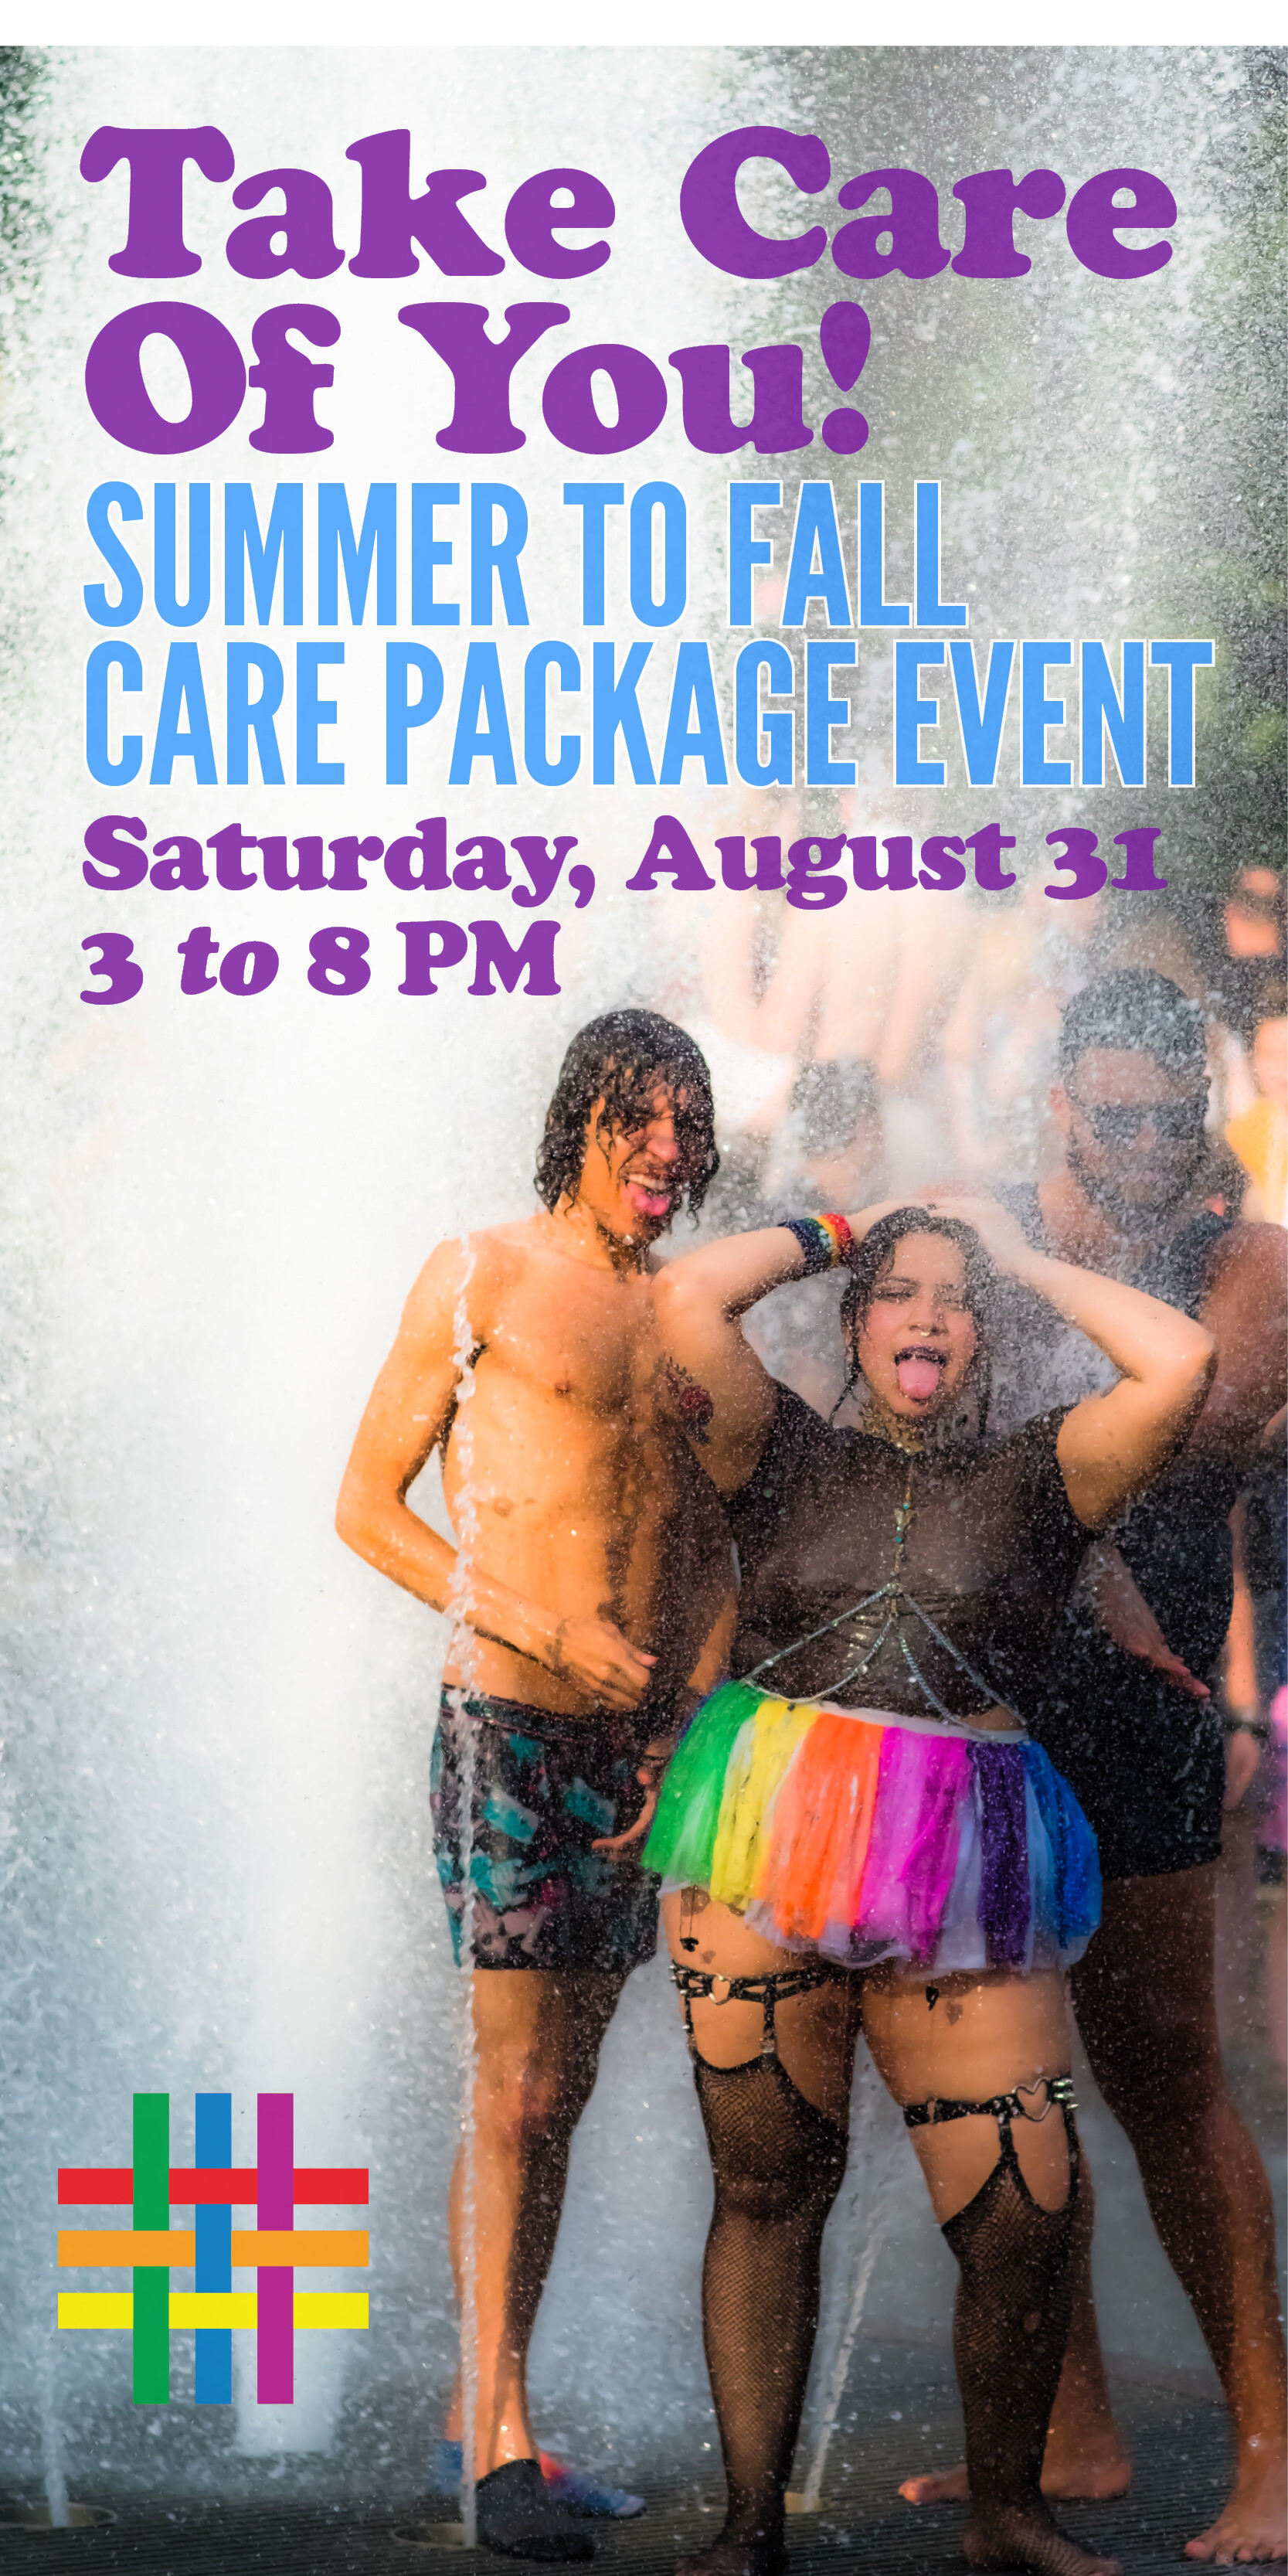 Summer to Fall Care Package Event at Brooklyn Community Pride Center